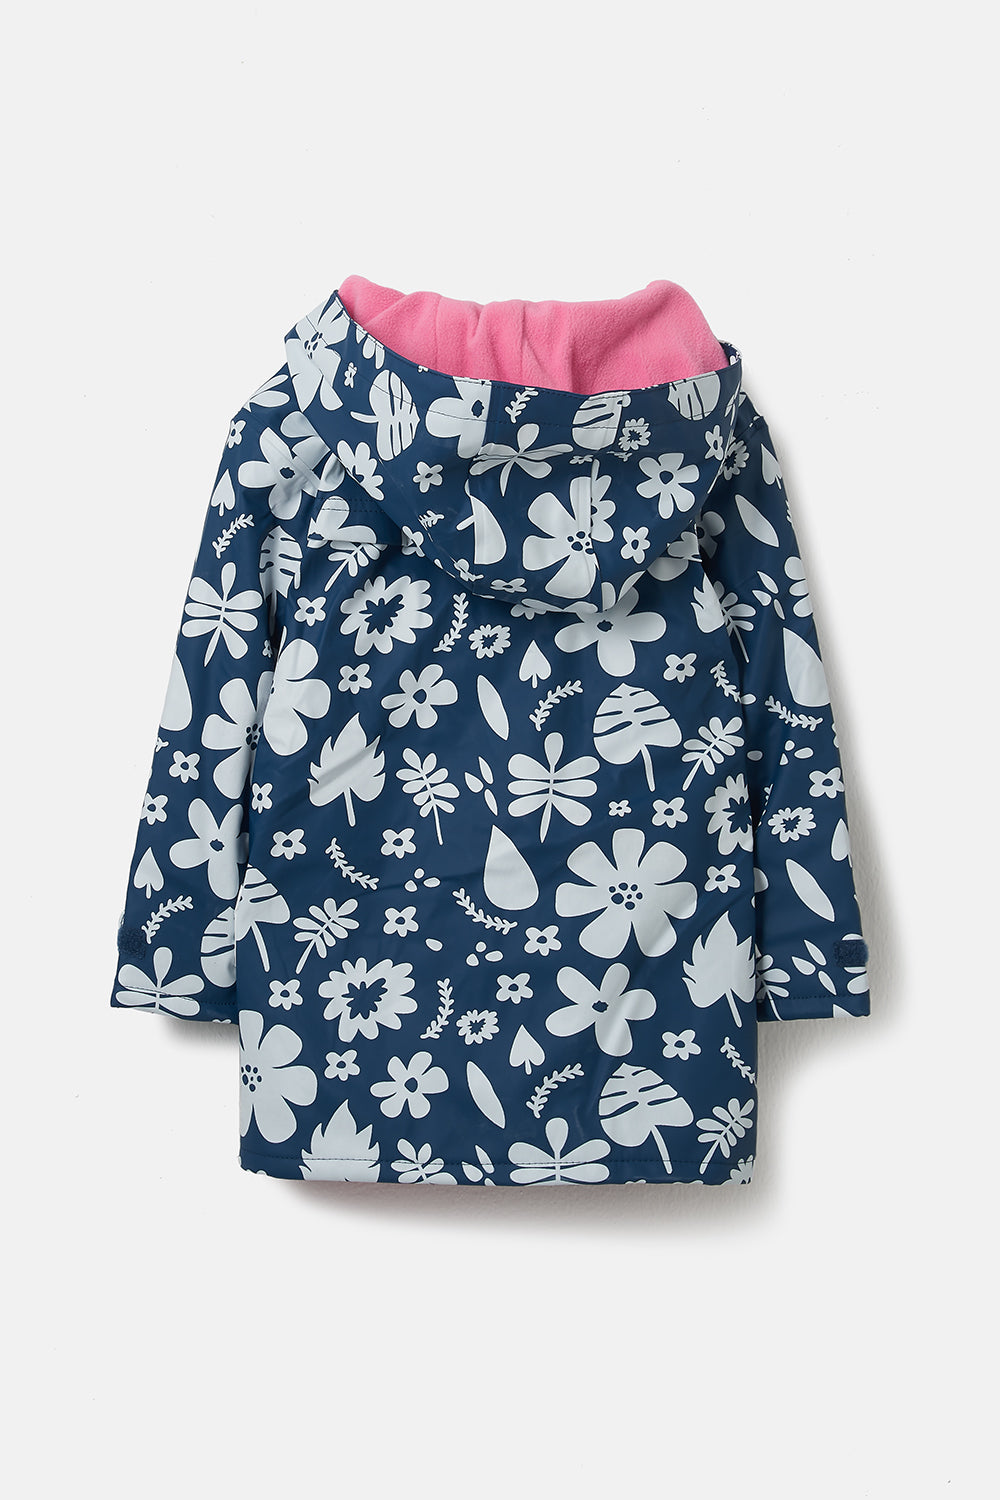 Lighthouse Amy Girls Waterproof Rubber Raincoat - Blue Floral